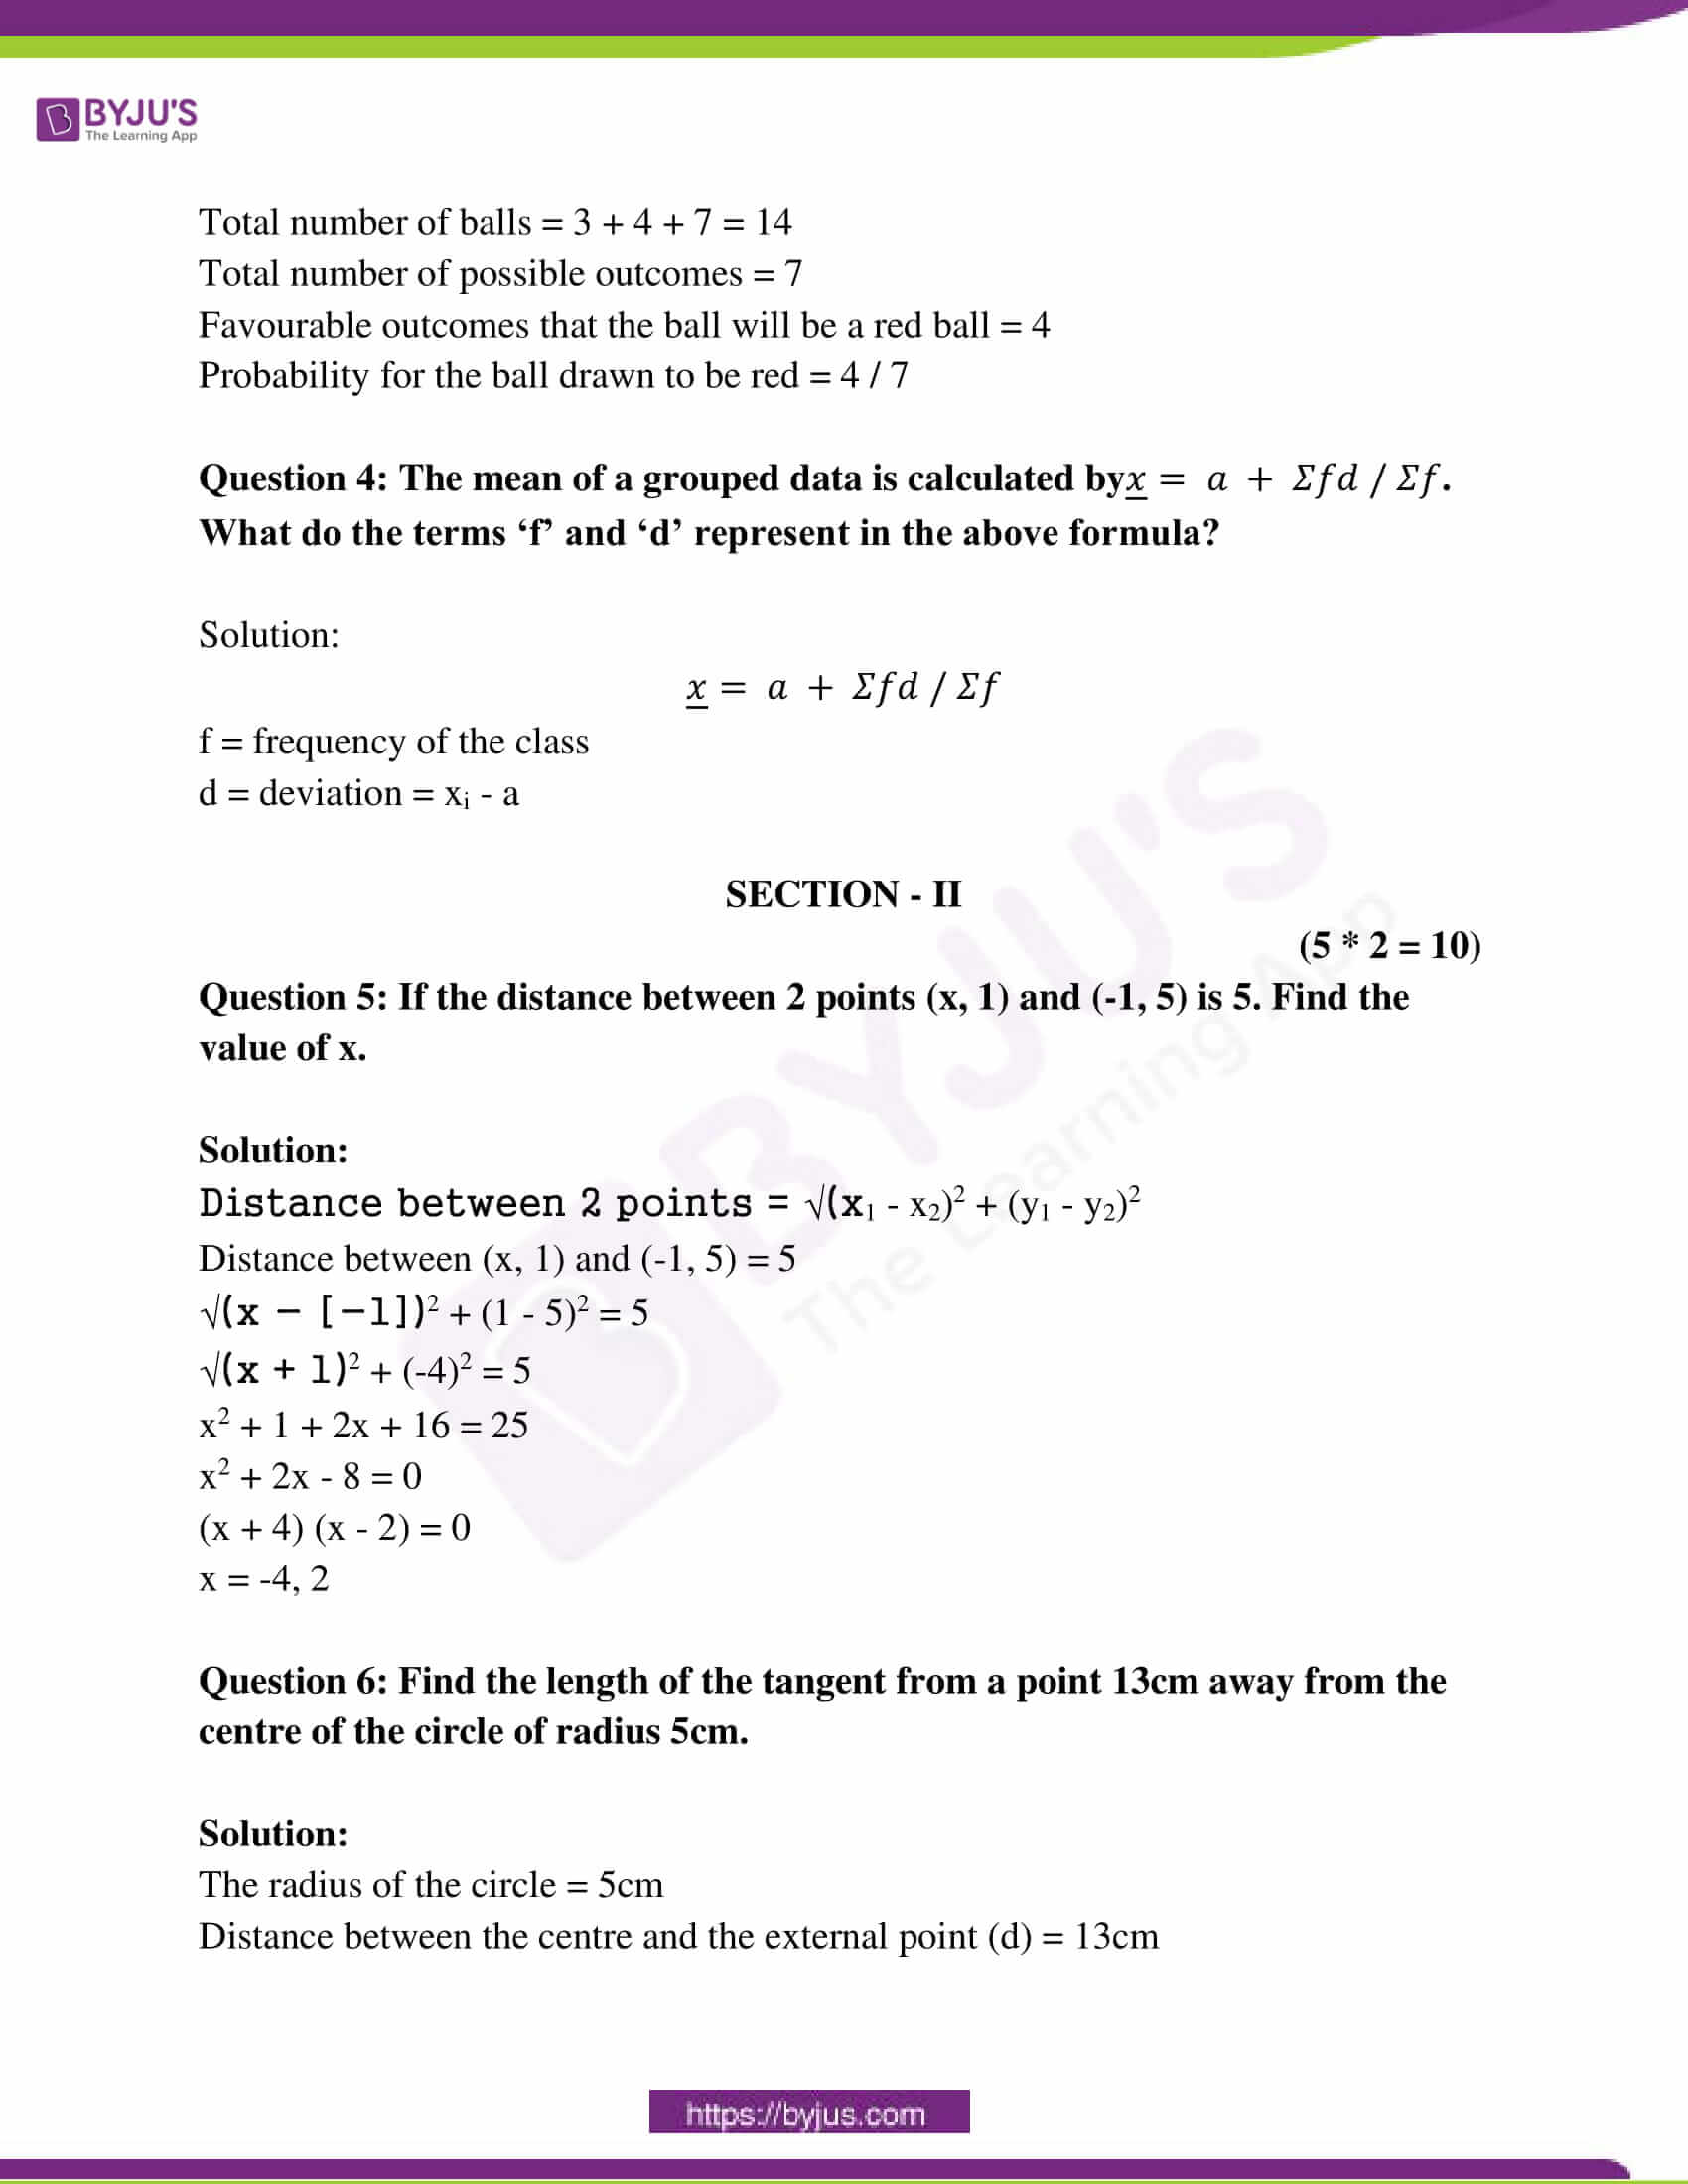 ap class 10 maths question paper 2 sol march 2019 02